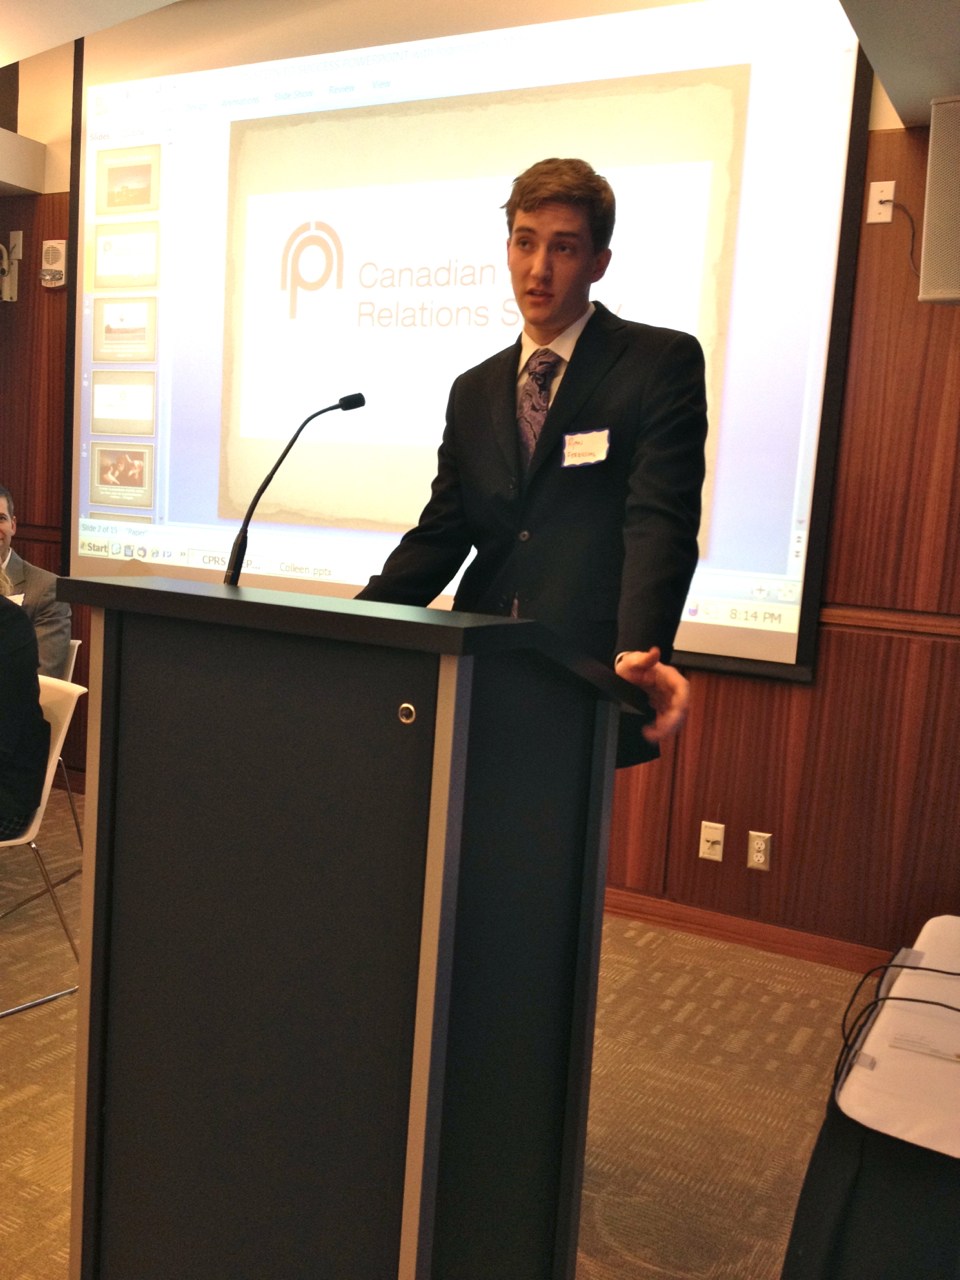 Ryan Ferguson is the first-ever winner of CPRS' Legacy Award, which recognizes one outstanding PR student a year.